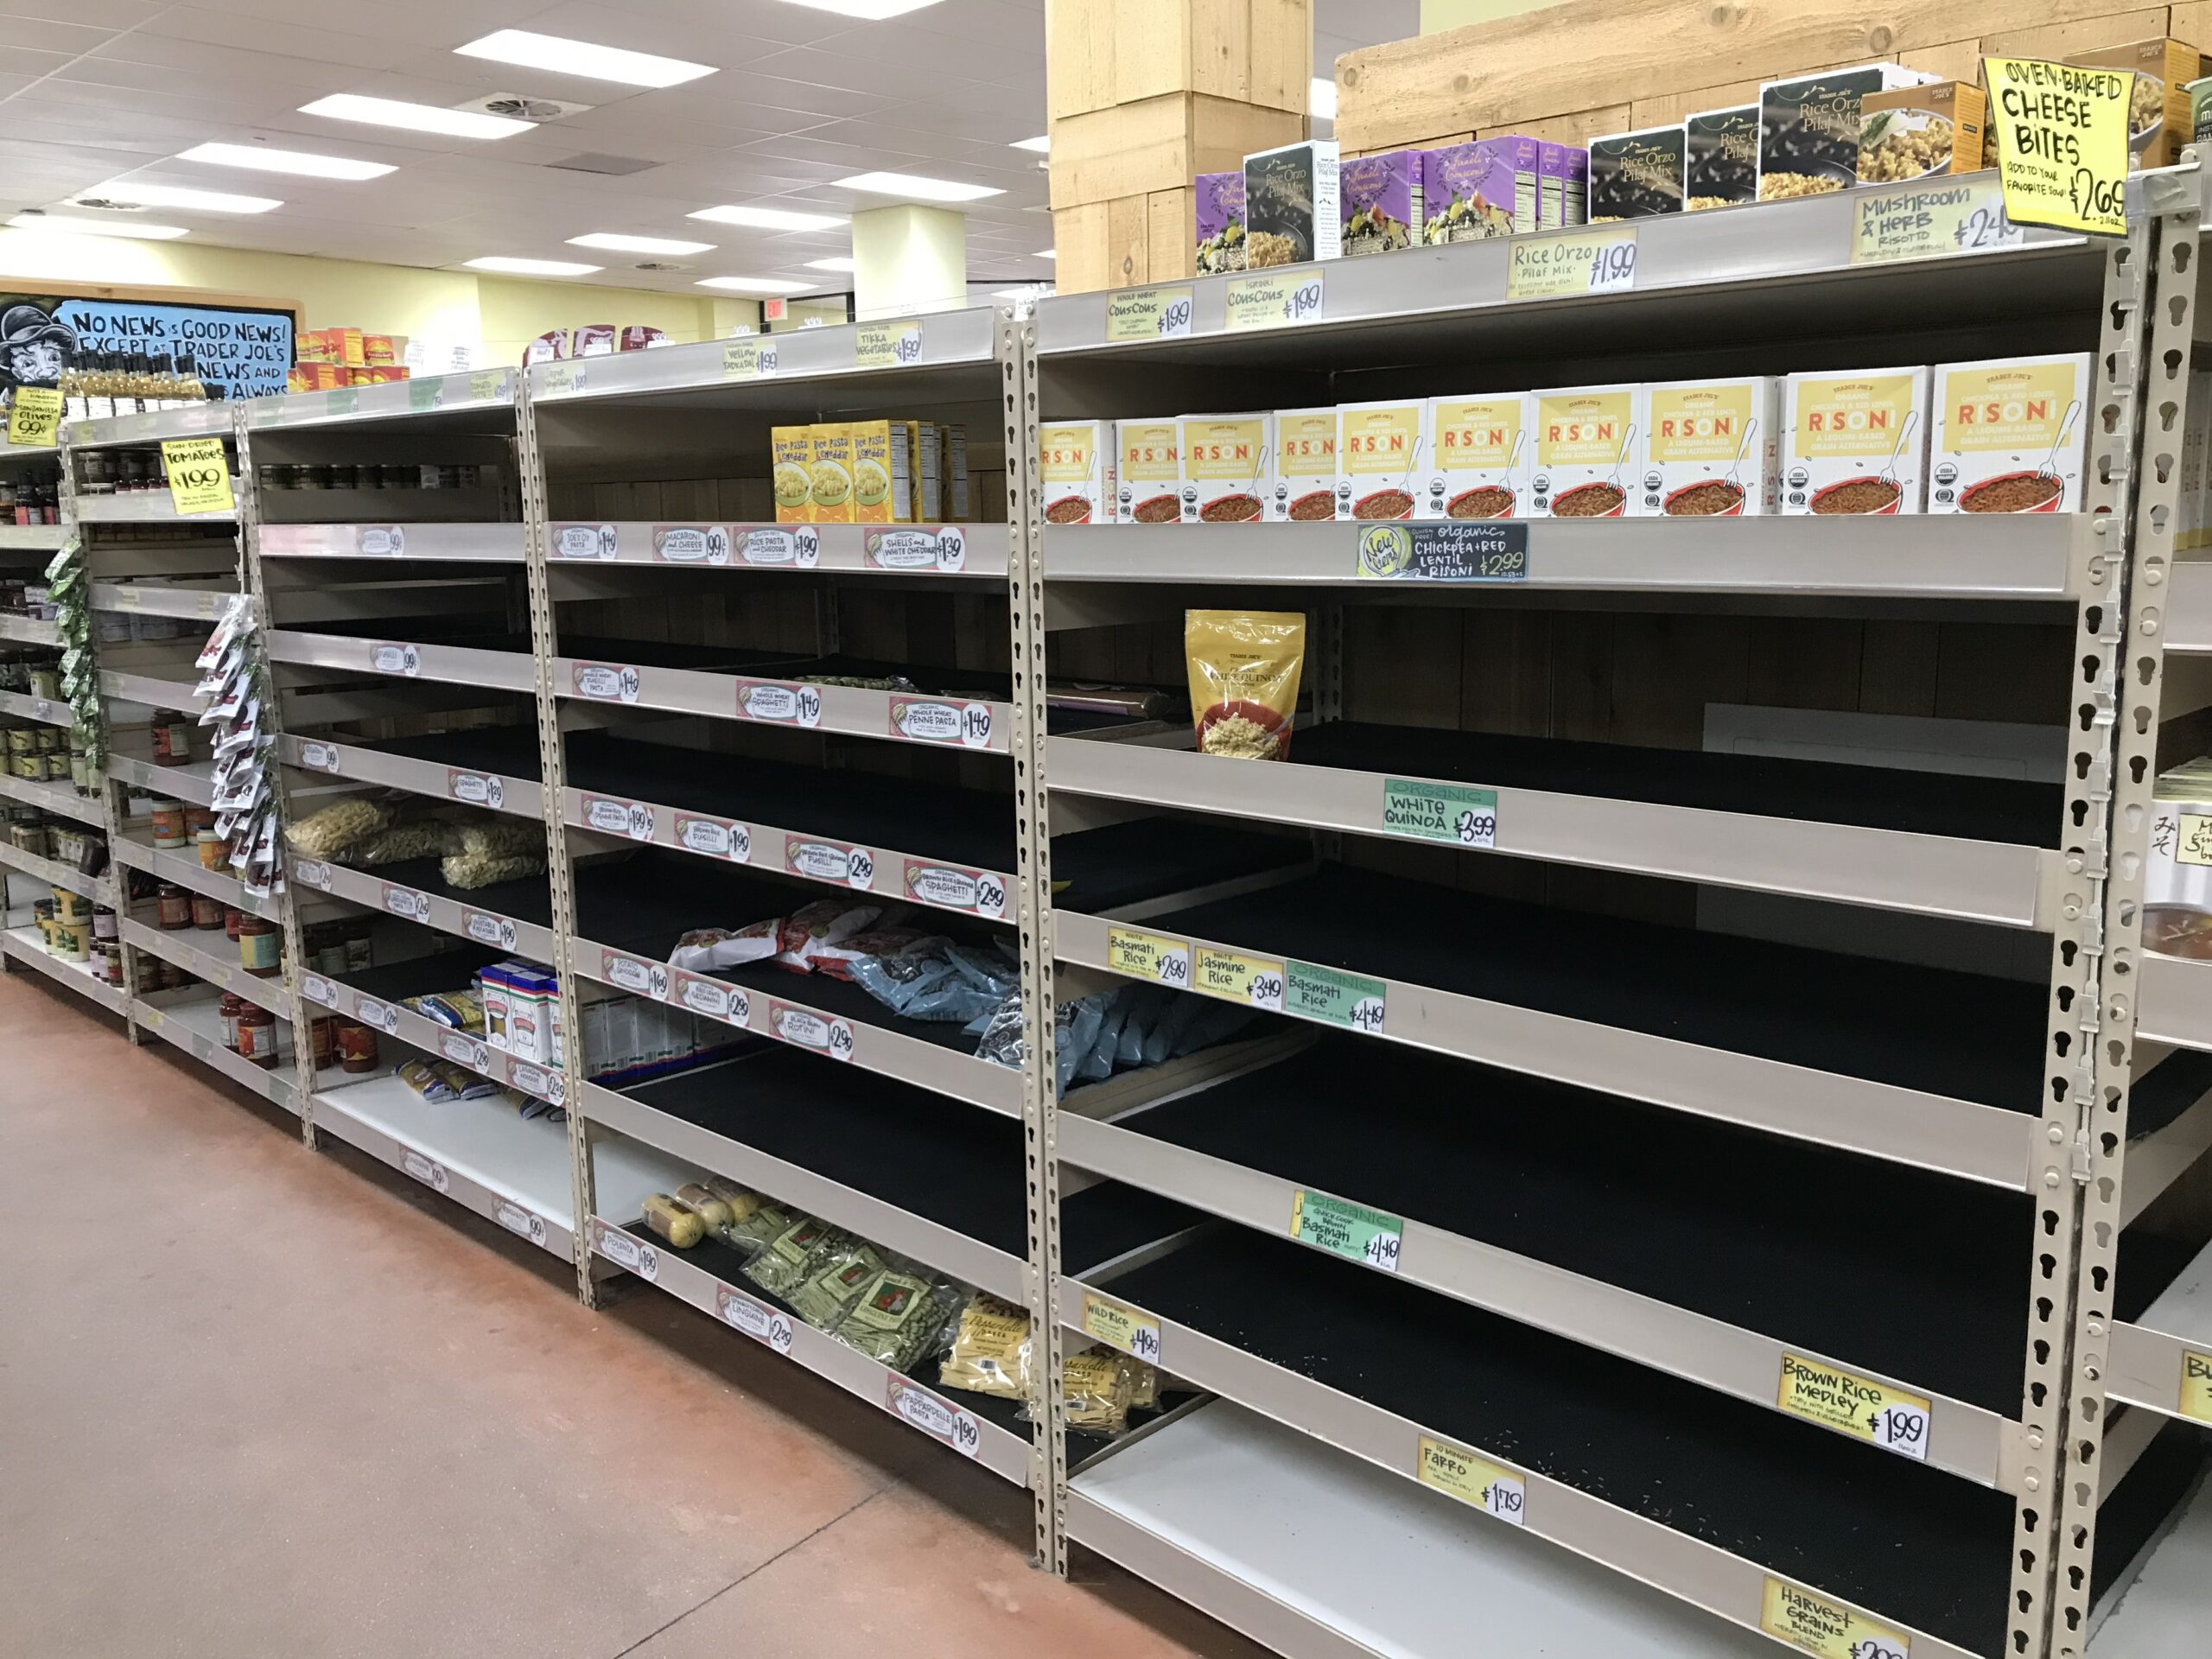 Empty shelves during COVId at Trader Joes, Food systems, food security, Jahn Research Group, Molly Jahn